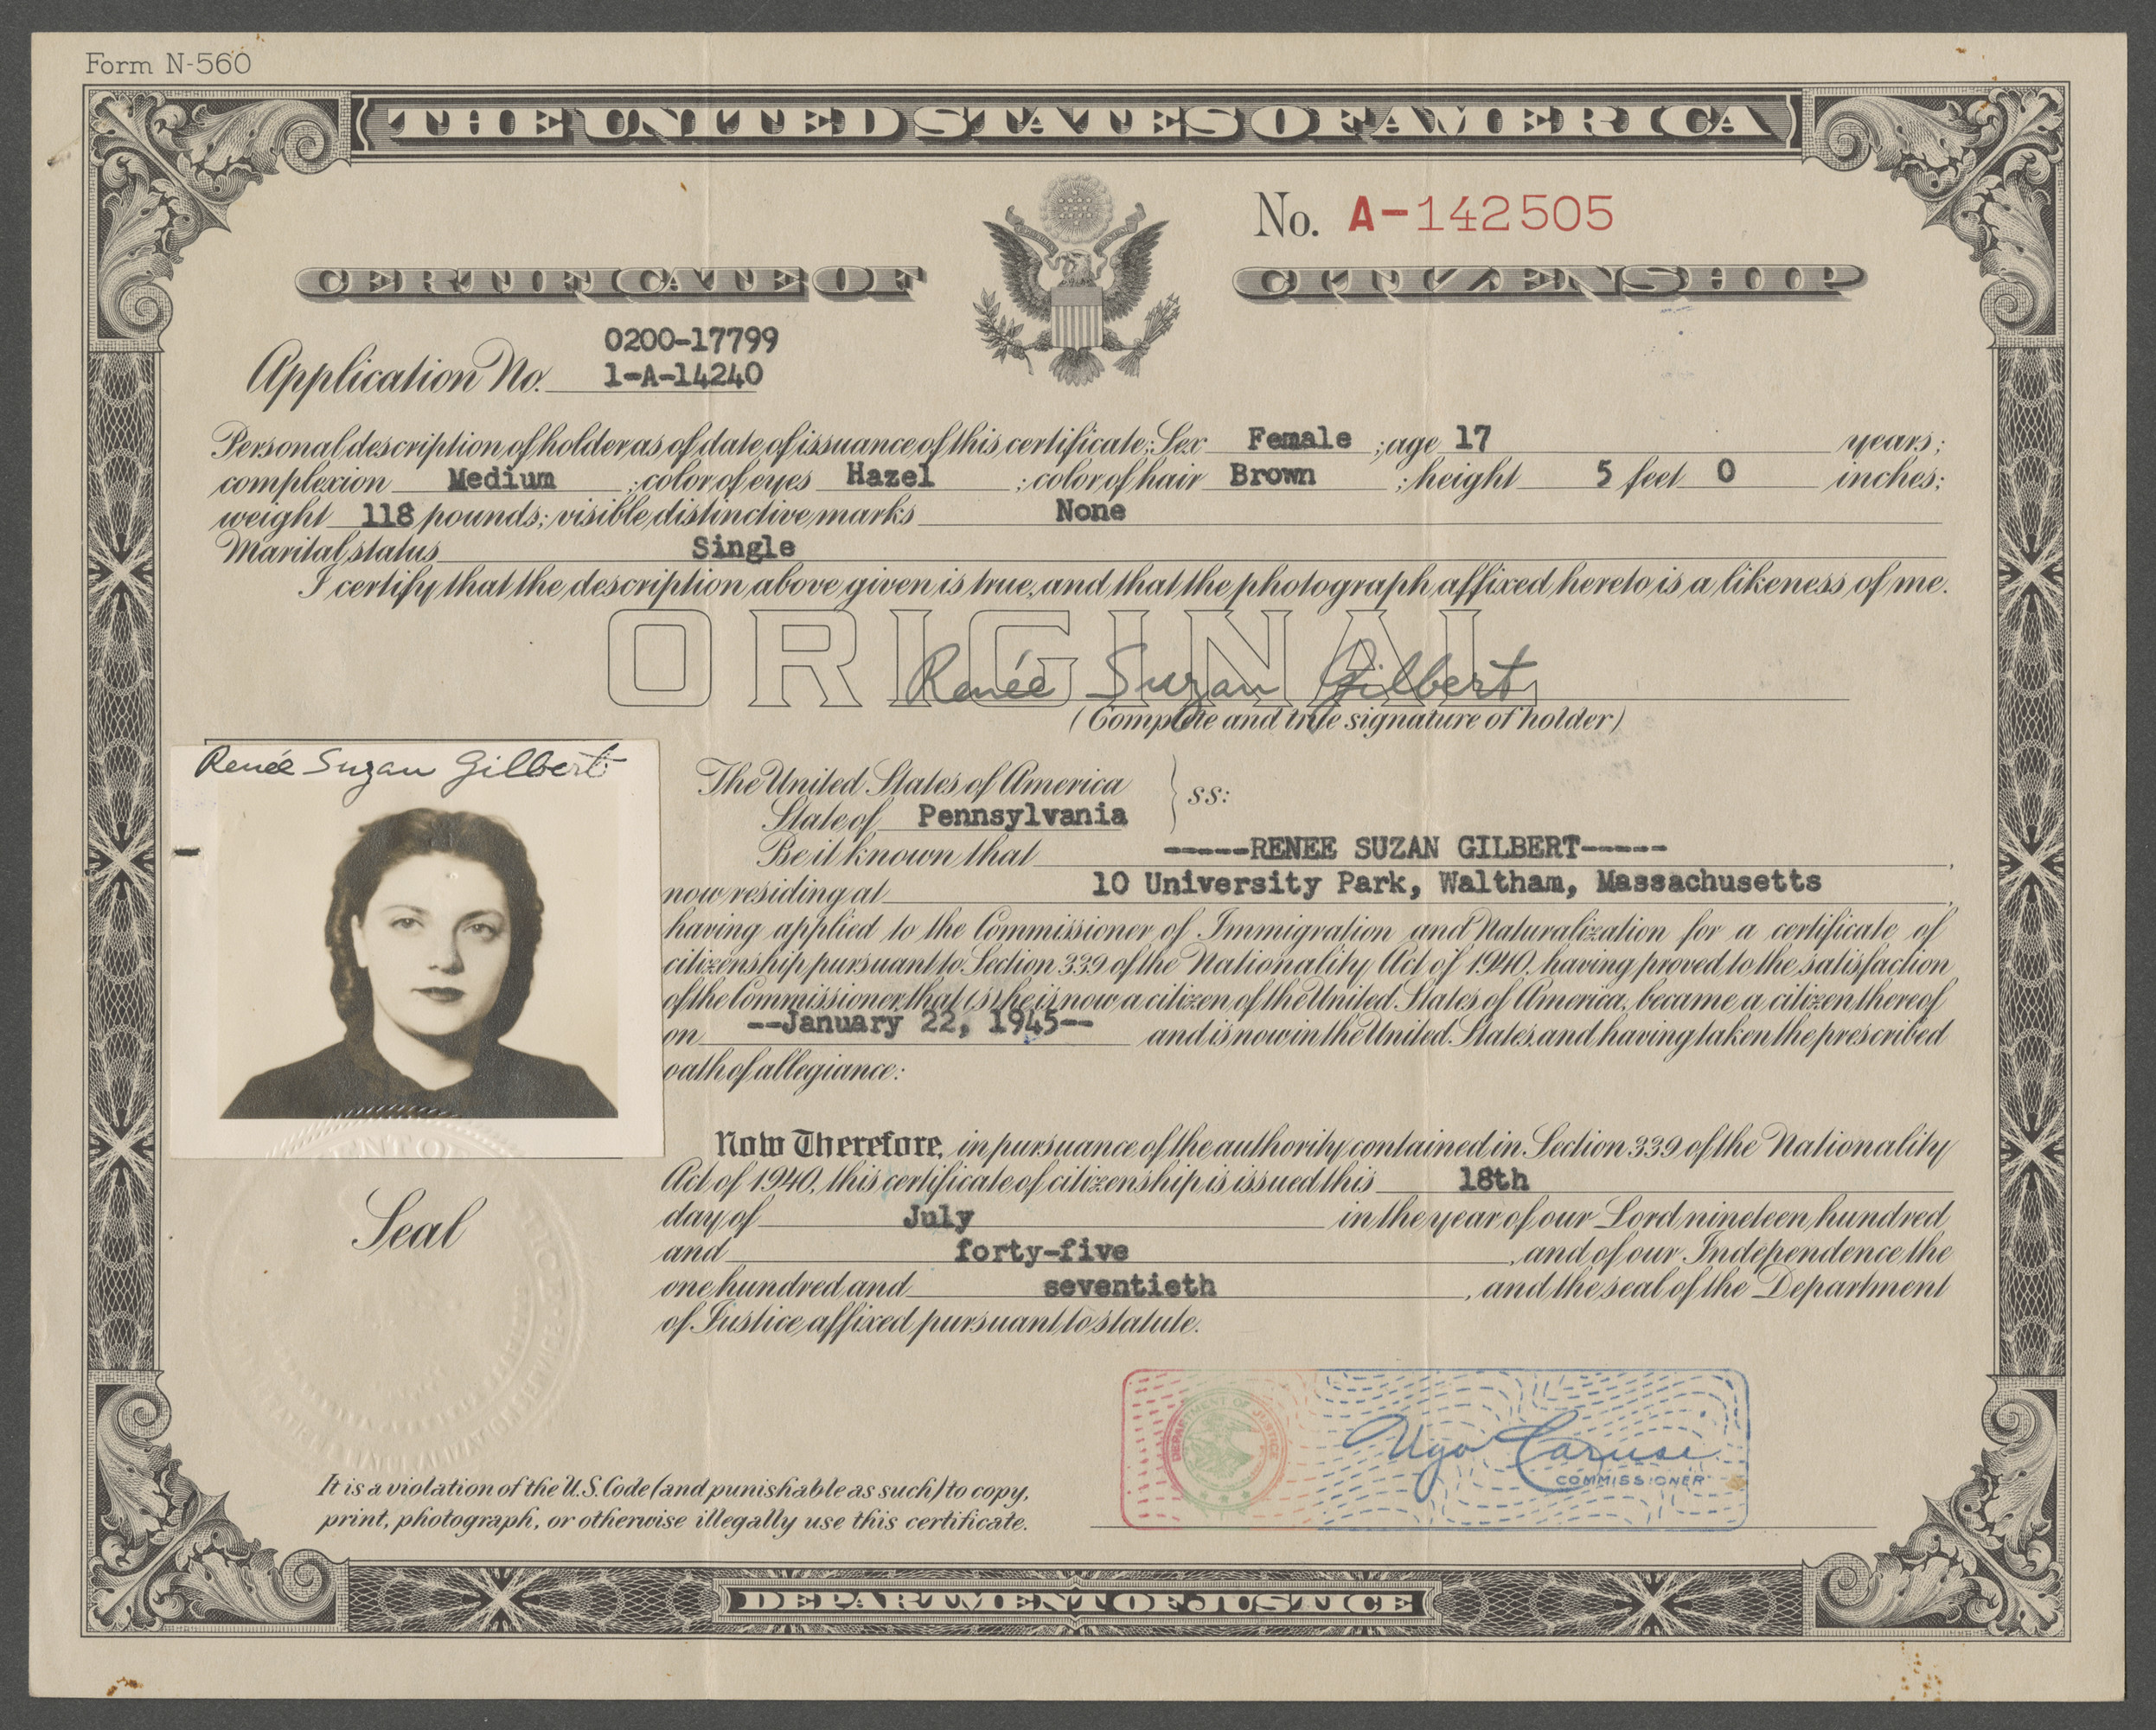 Certificate of U.S. Citizenship issued to Renee Suzan Gilbert (previously Goldschmied).